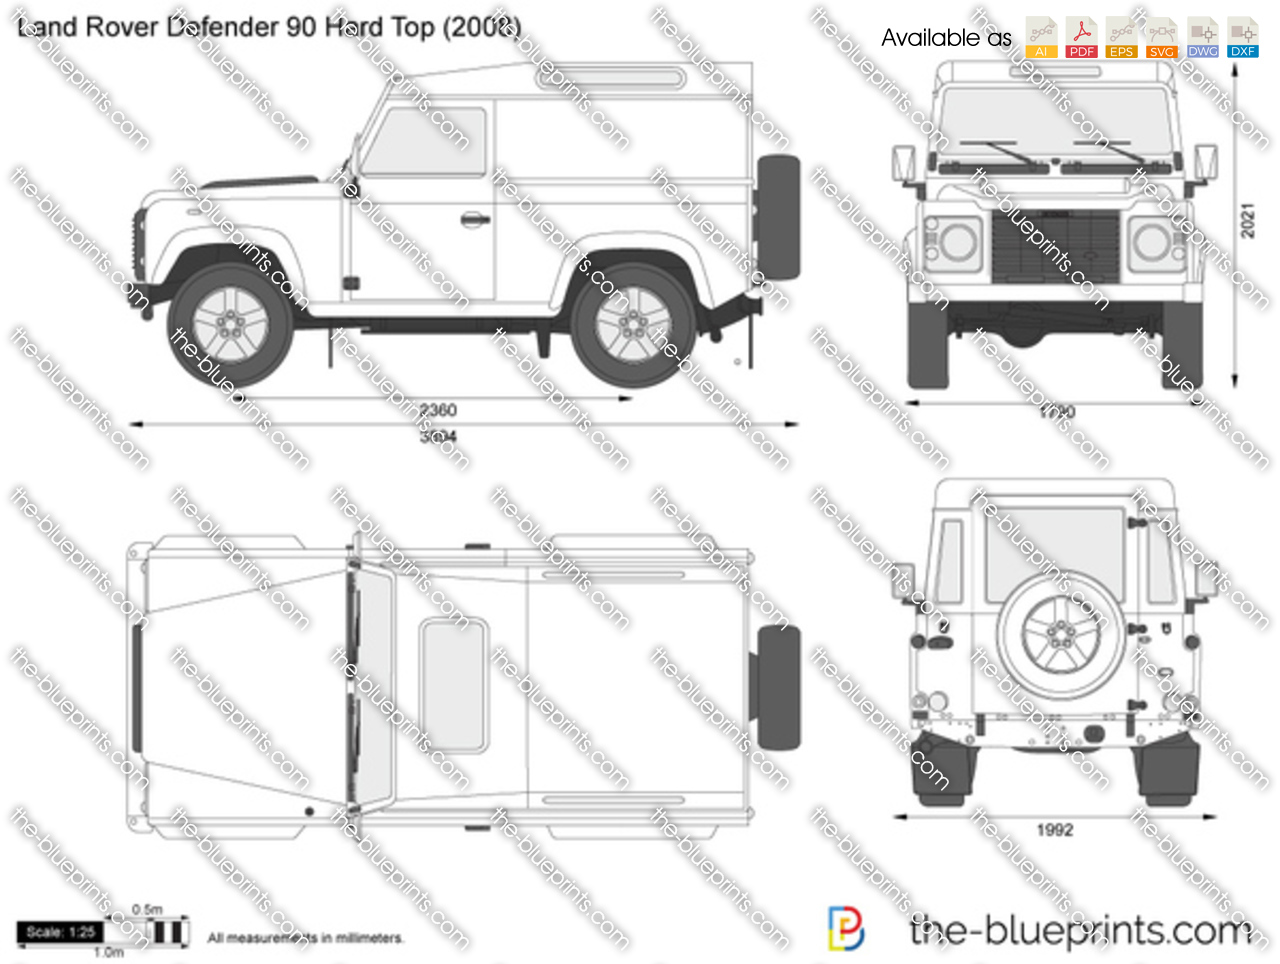 Land Rover Defender 90 Hard Top 2006